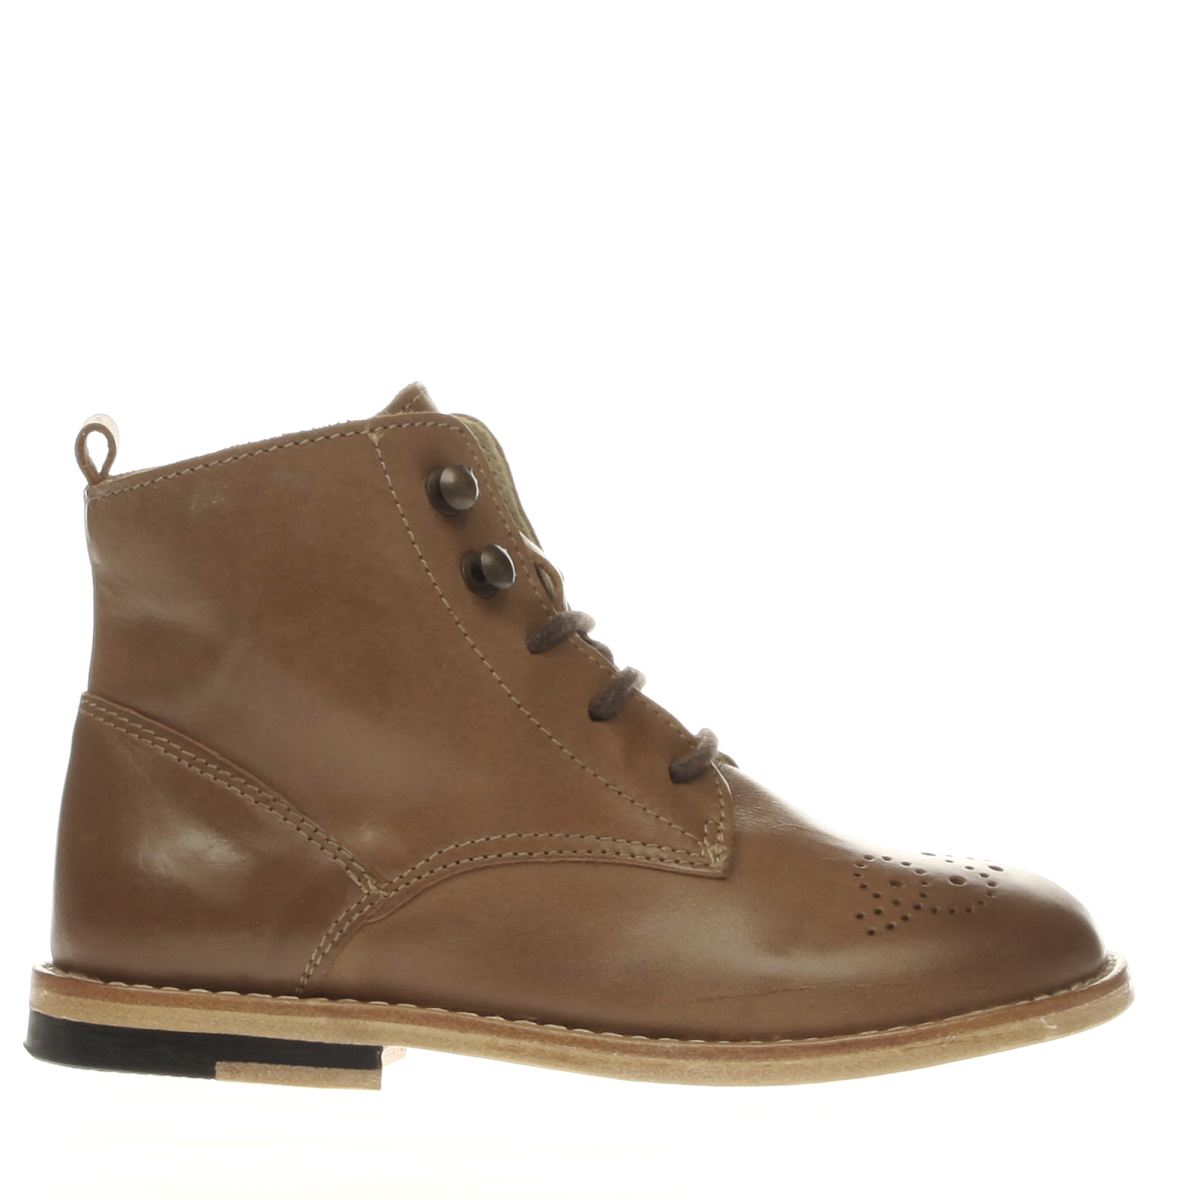 young soles Young Soles Tan Buster Unisex Junior